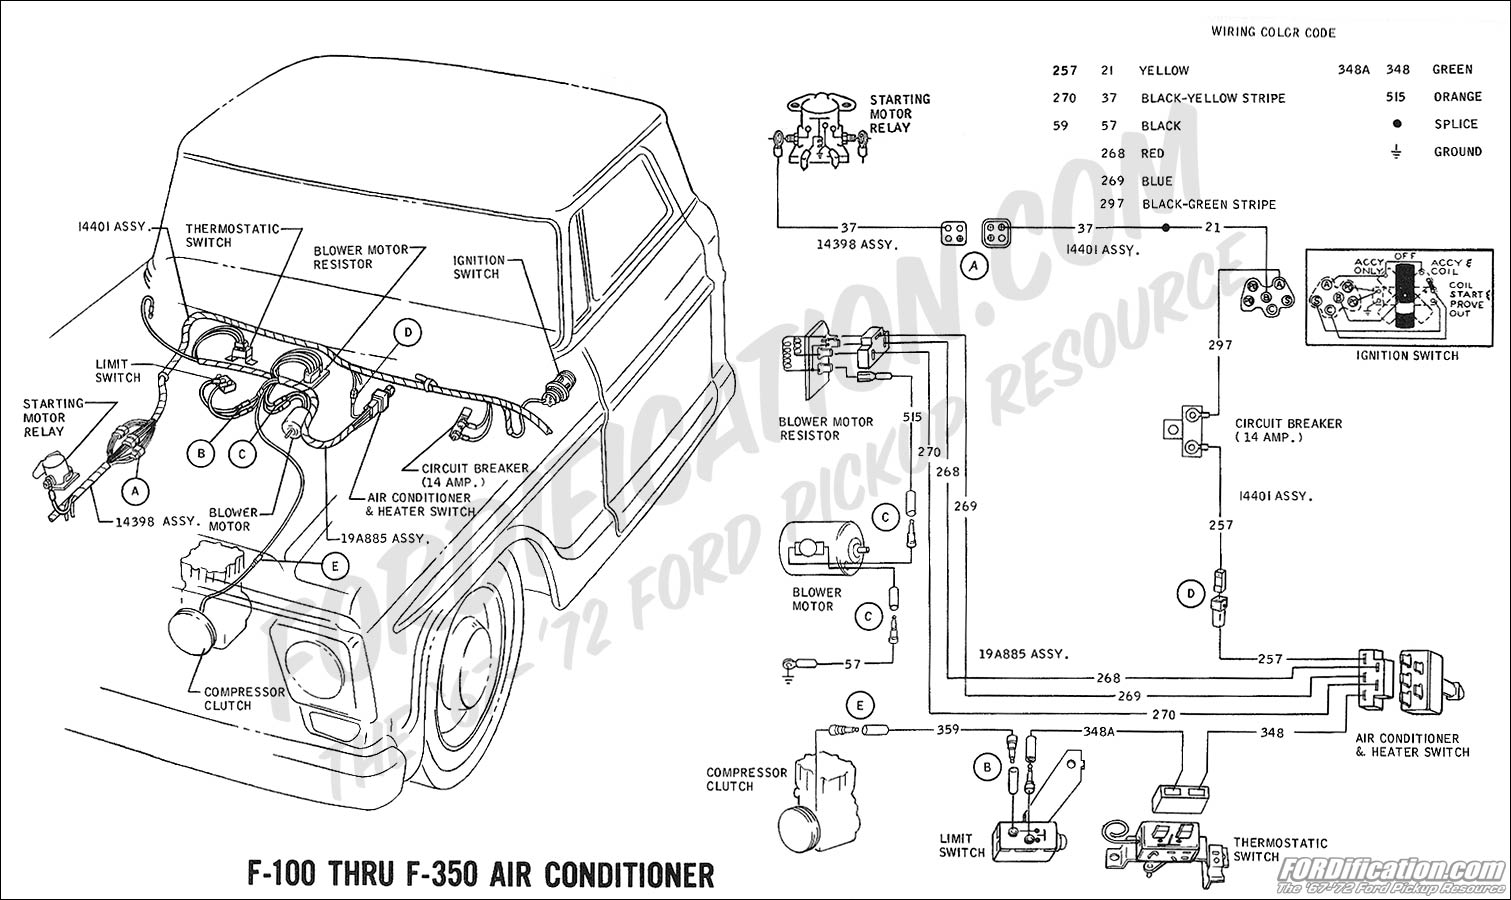 [FPER_4992]  6711 1996 Ford F 250 Wiring Diagram | Wiring Library | 1996 Ford F150 Radio Wiring Diagram |  | Wiring Library